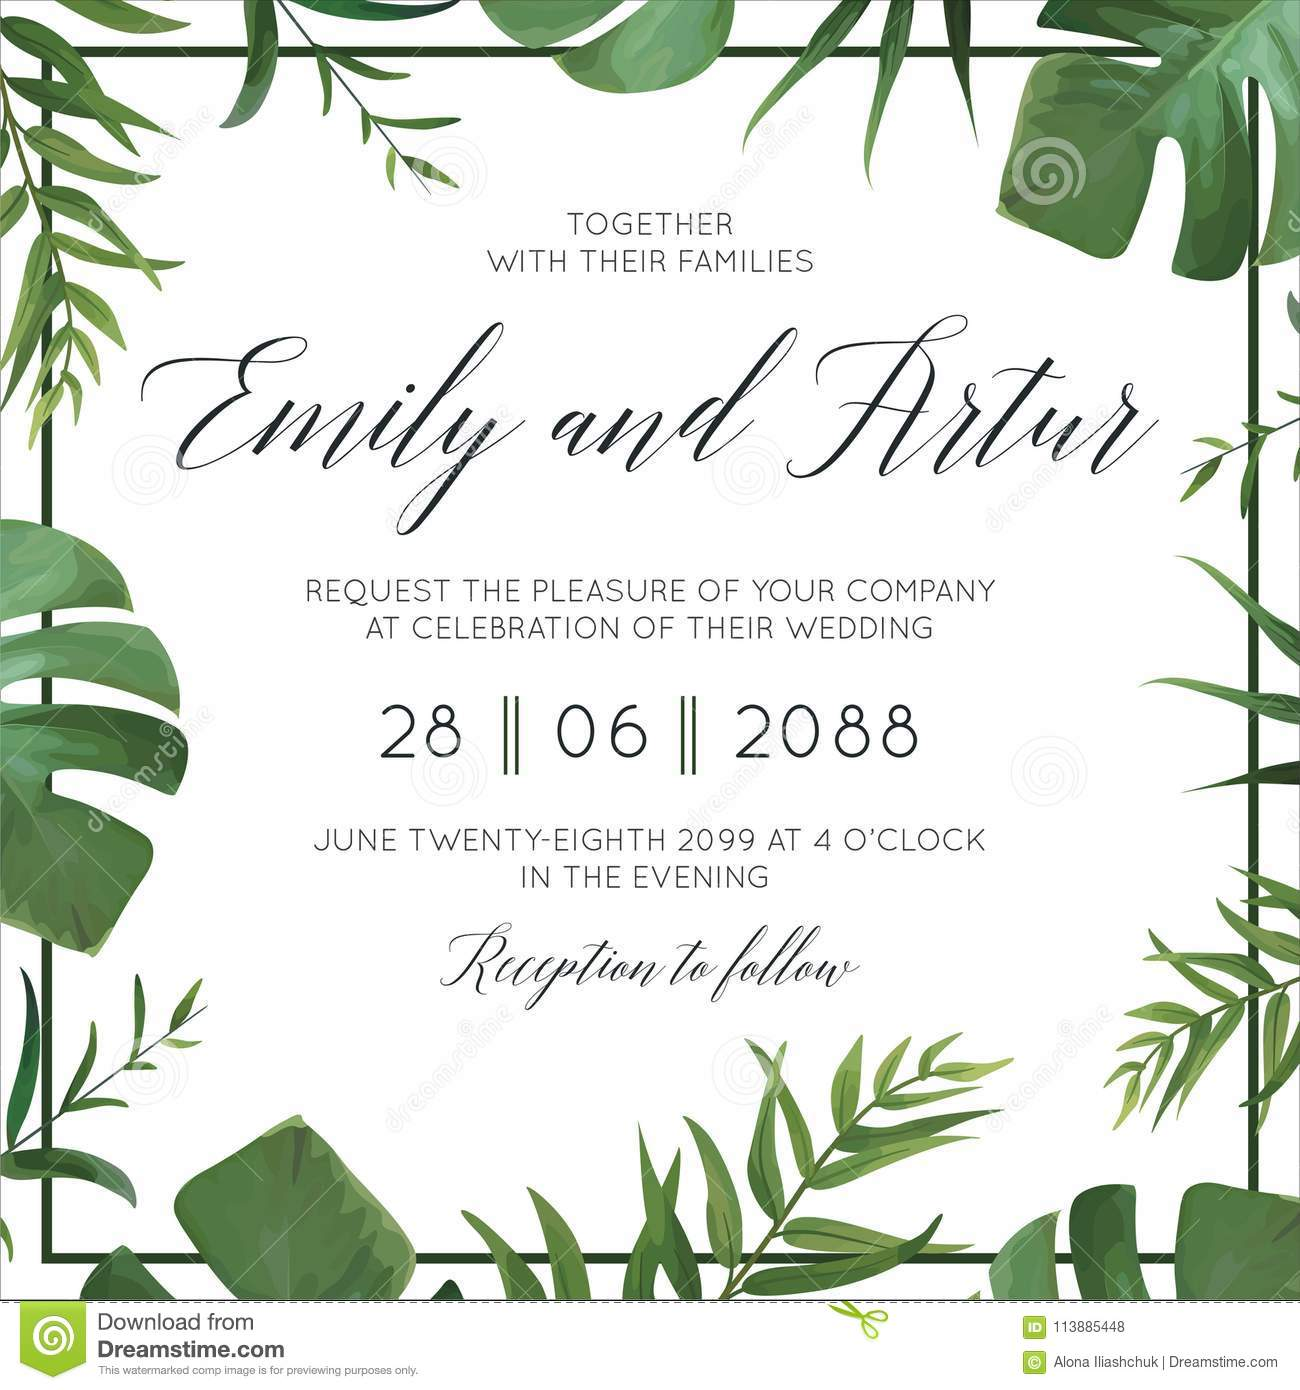 Tropical wedding floral invitation, invite card. Vector watercolor style exotic palm tree green leaves, forest greenery herbs, nat